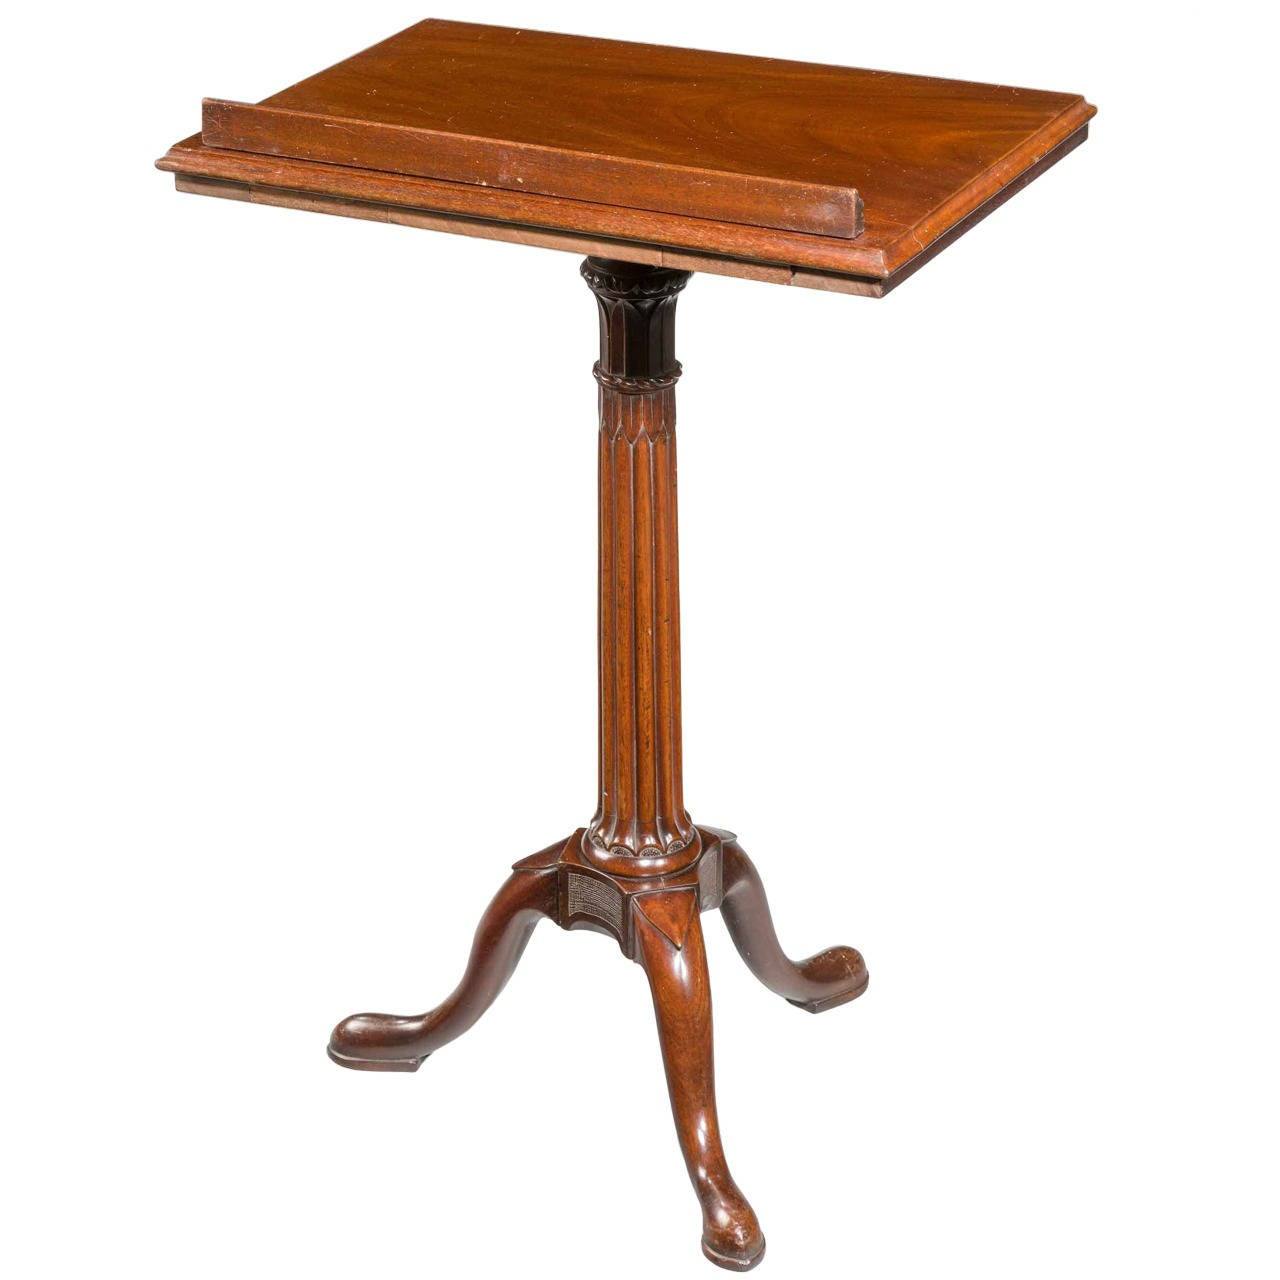 Chippendale Period Mahogany Reading or Writing Table